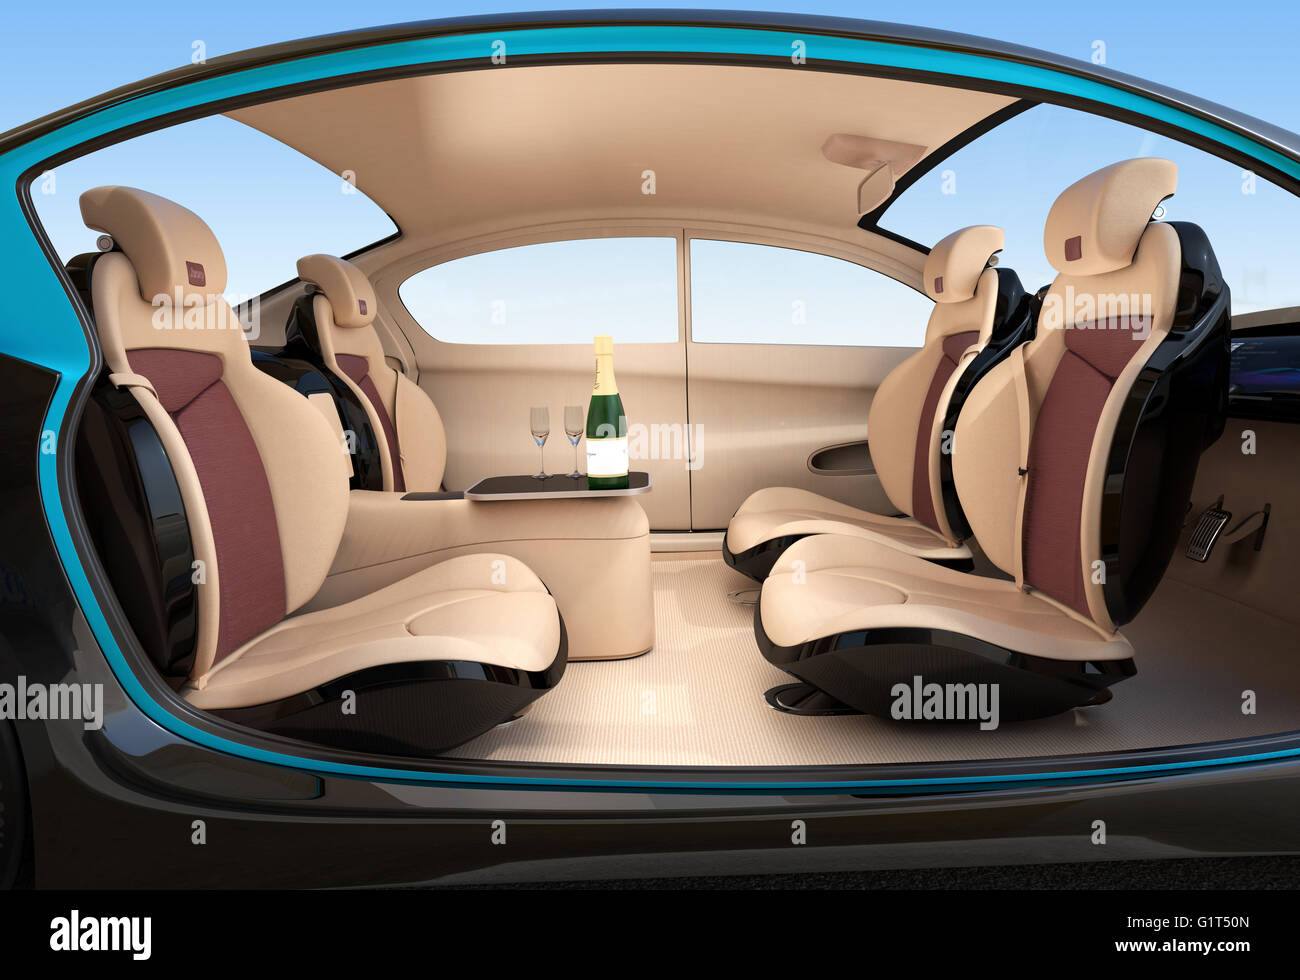 autonomous car interior concept luxury interior serve cool drink stock photo 104407653 alamy. Black Bedroom Furniture Sets. Home Design Ideas